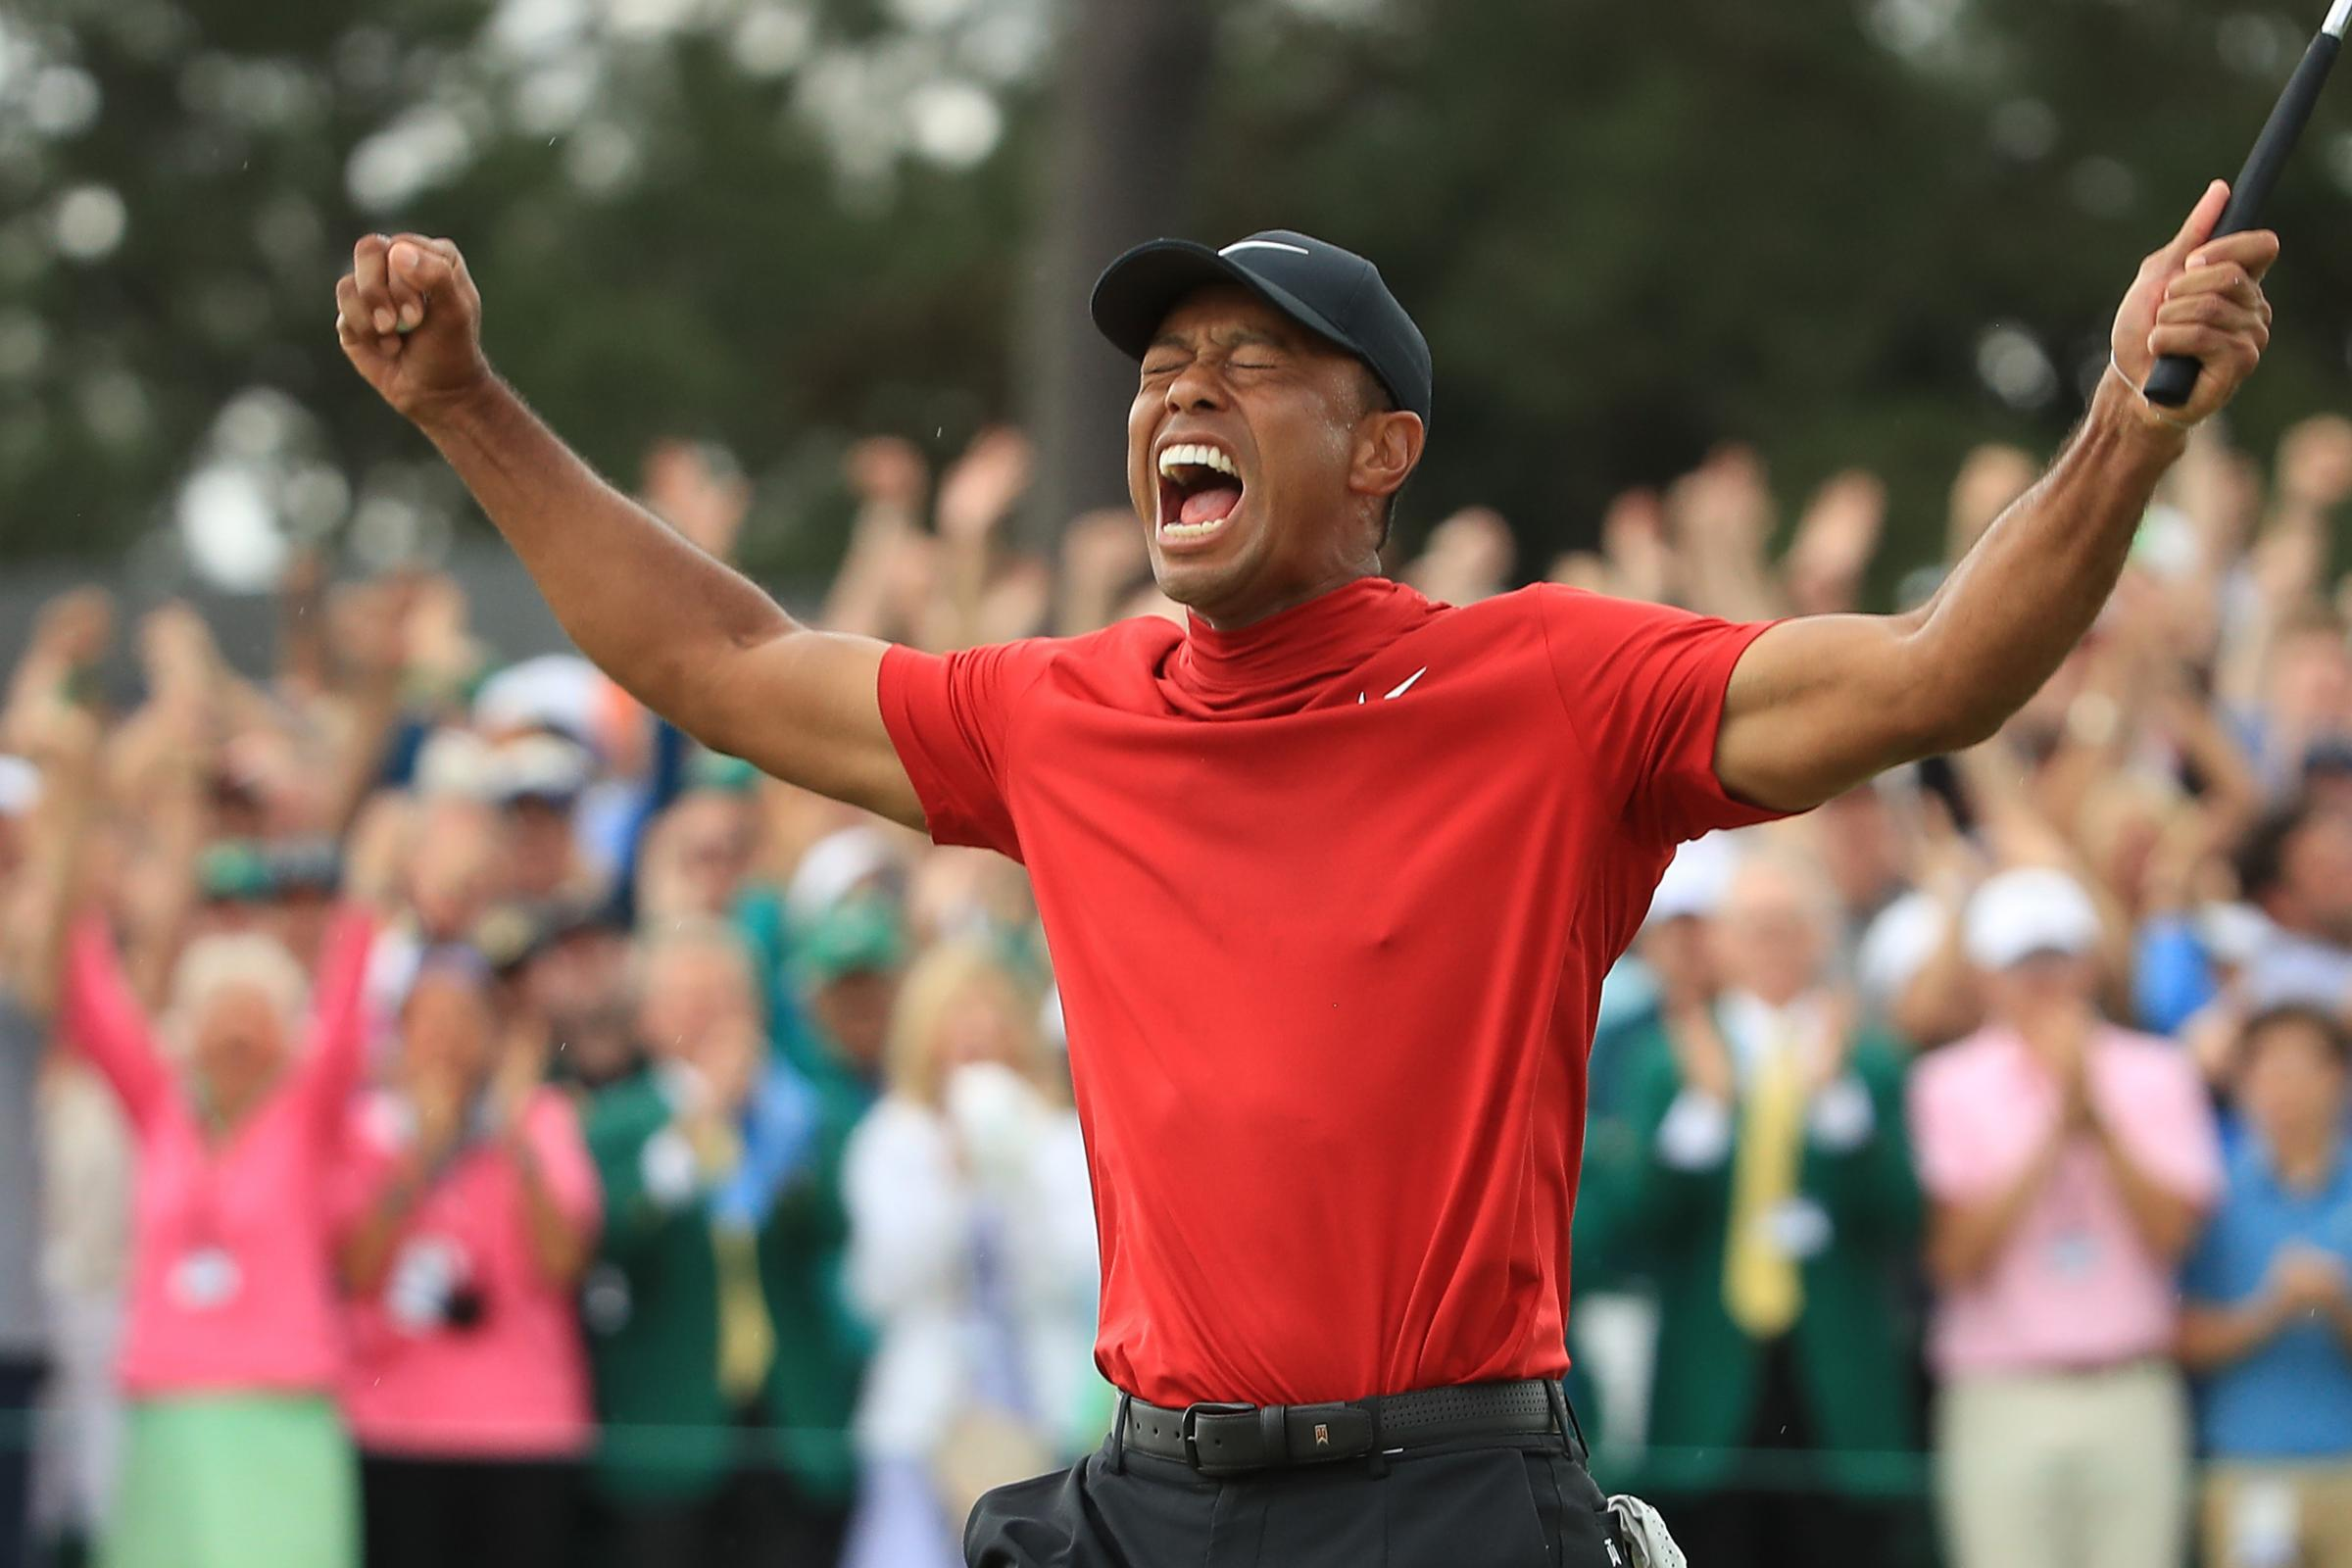 Tiger Woods celebrates after sinking his putt to win during the final round of the Masters